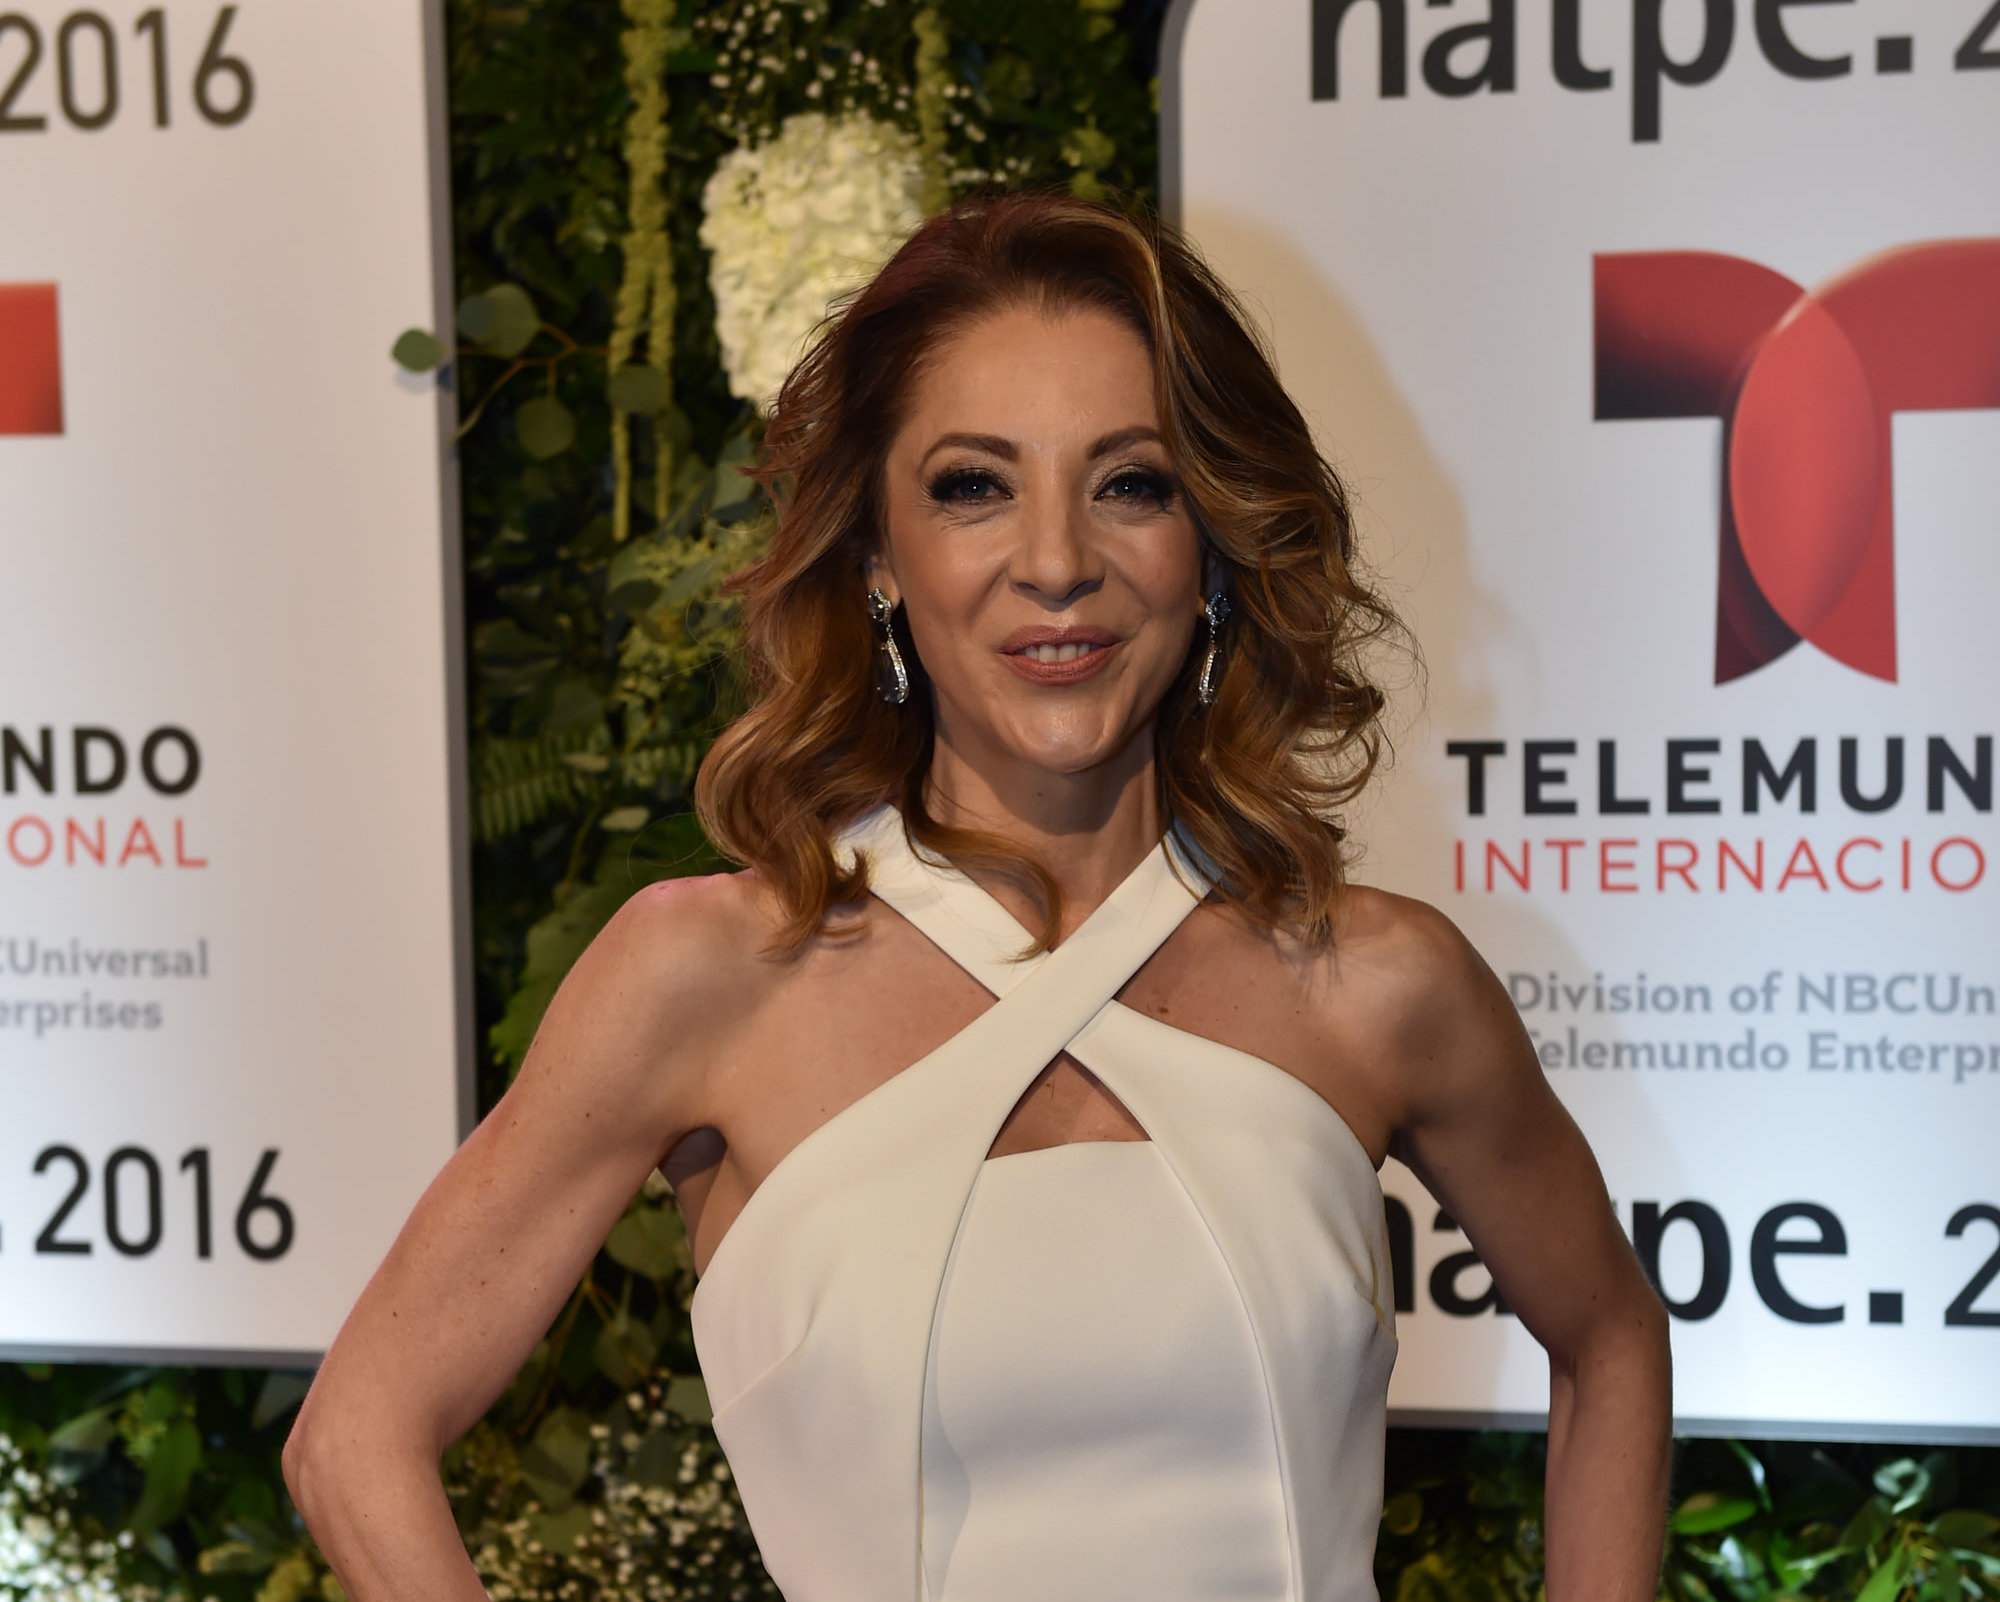 The Tributes Pour in After News of Edith González's Death